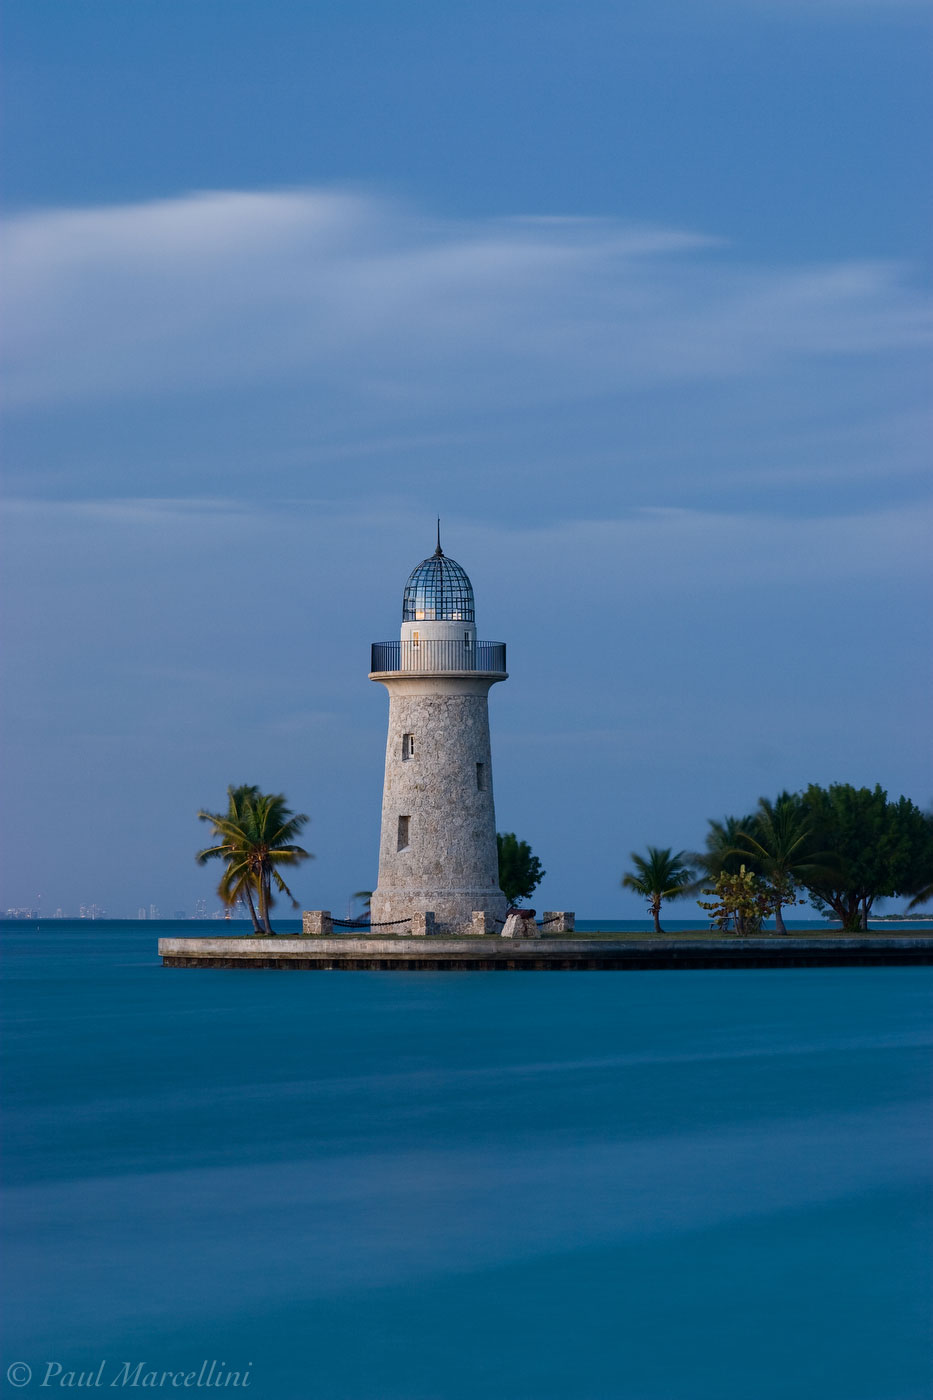 boca chita, biscayne national park, twilight, lighthouse, florida, south florida, nature, photography, photo